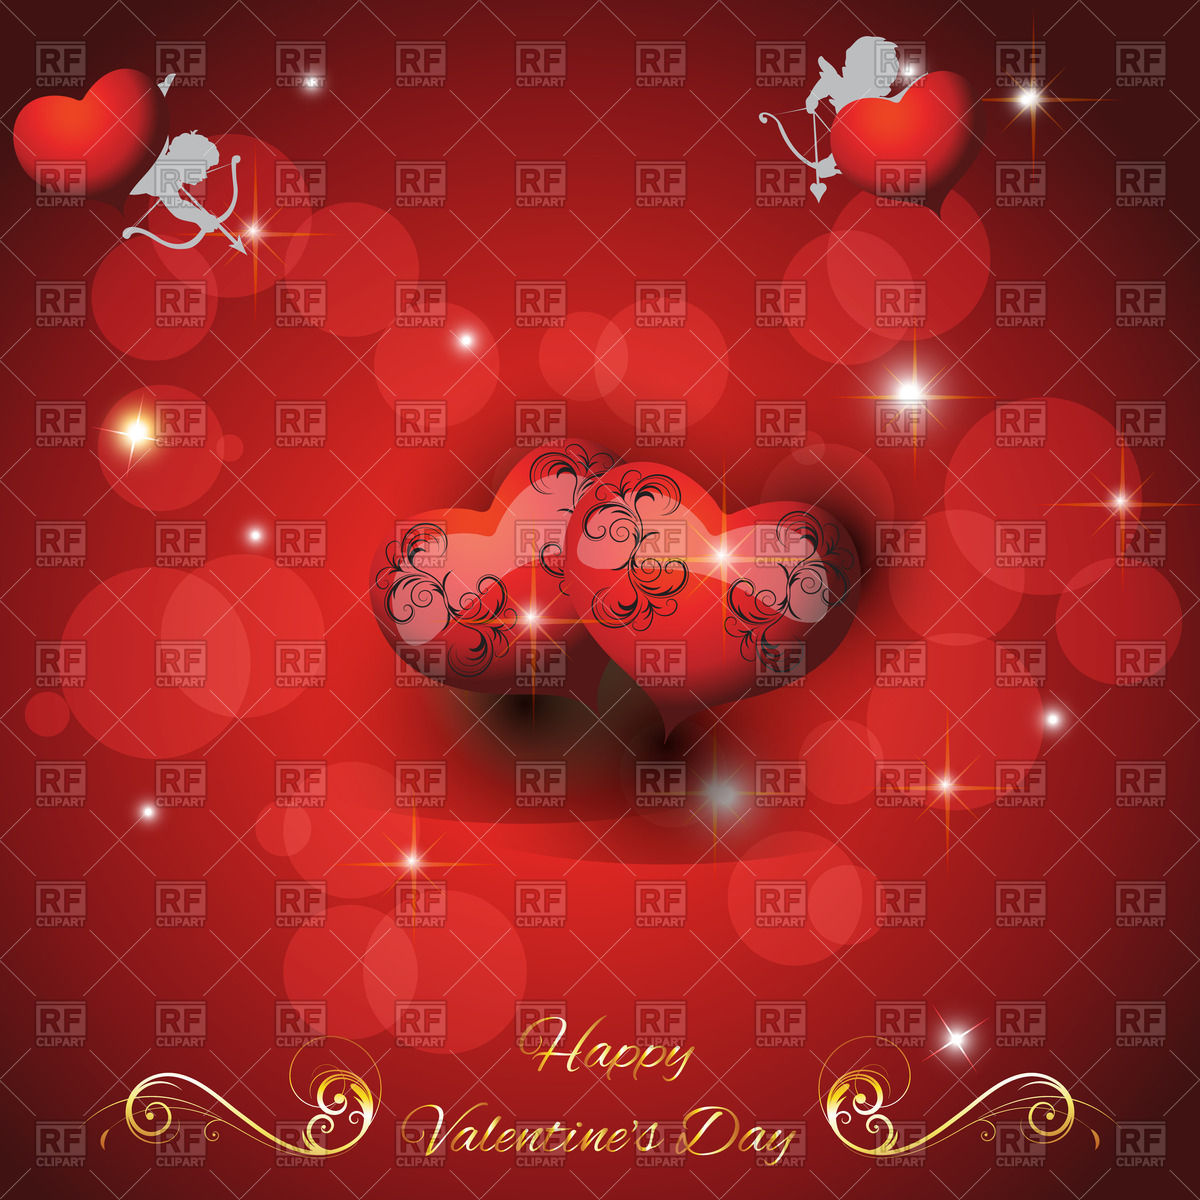 St  Valentine S Day Festive Background With Hearts And Cupids 55266